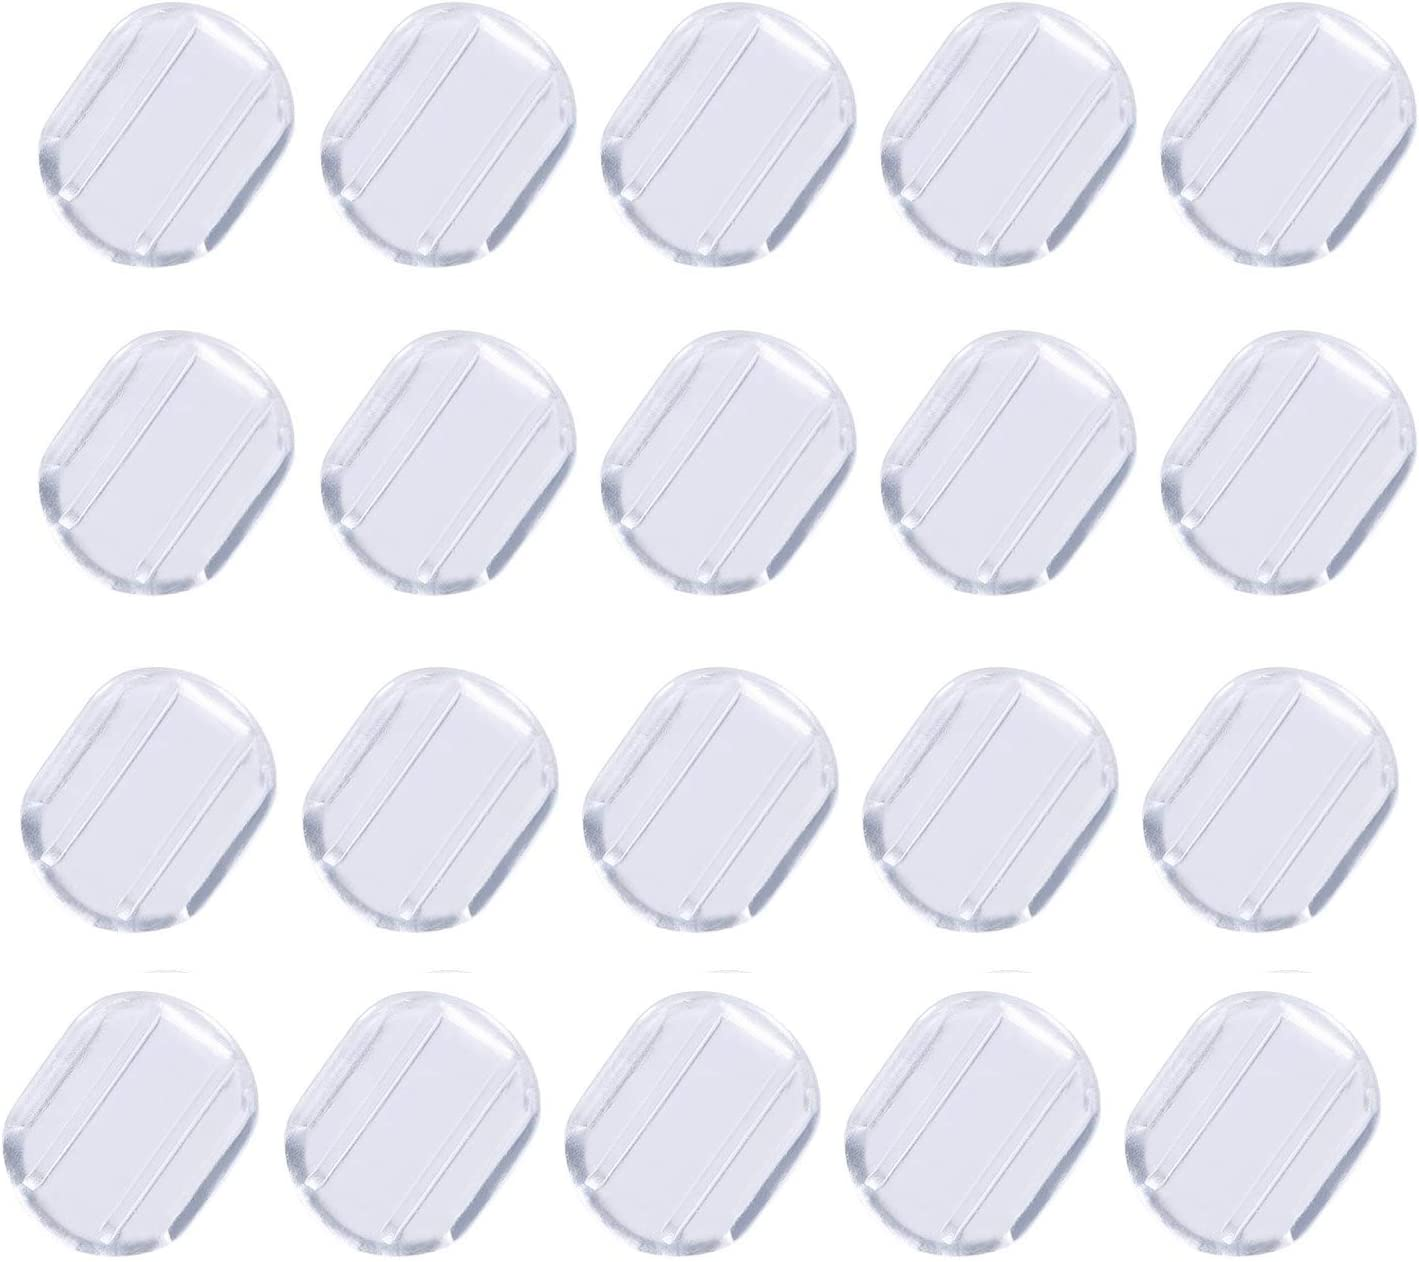 50Pcs Clear Soft Silicone Earring Pads Comfort Earring Cushion for Clip on Earrings, 8x10mm